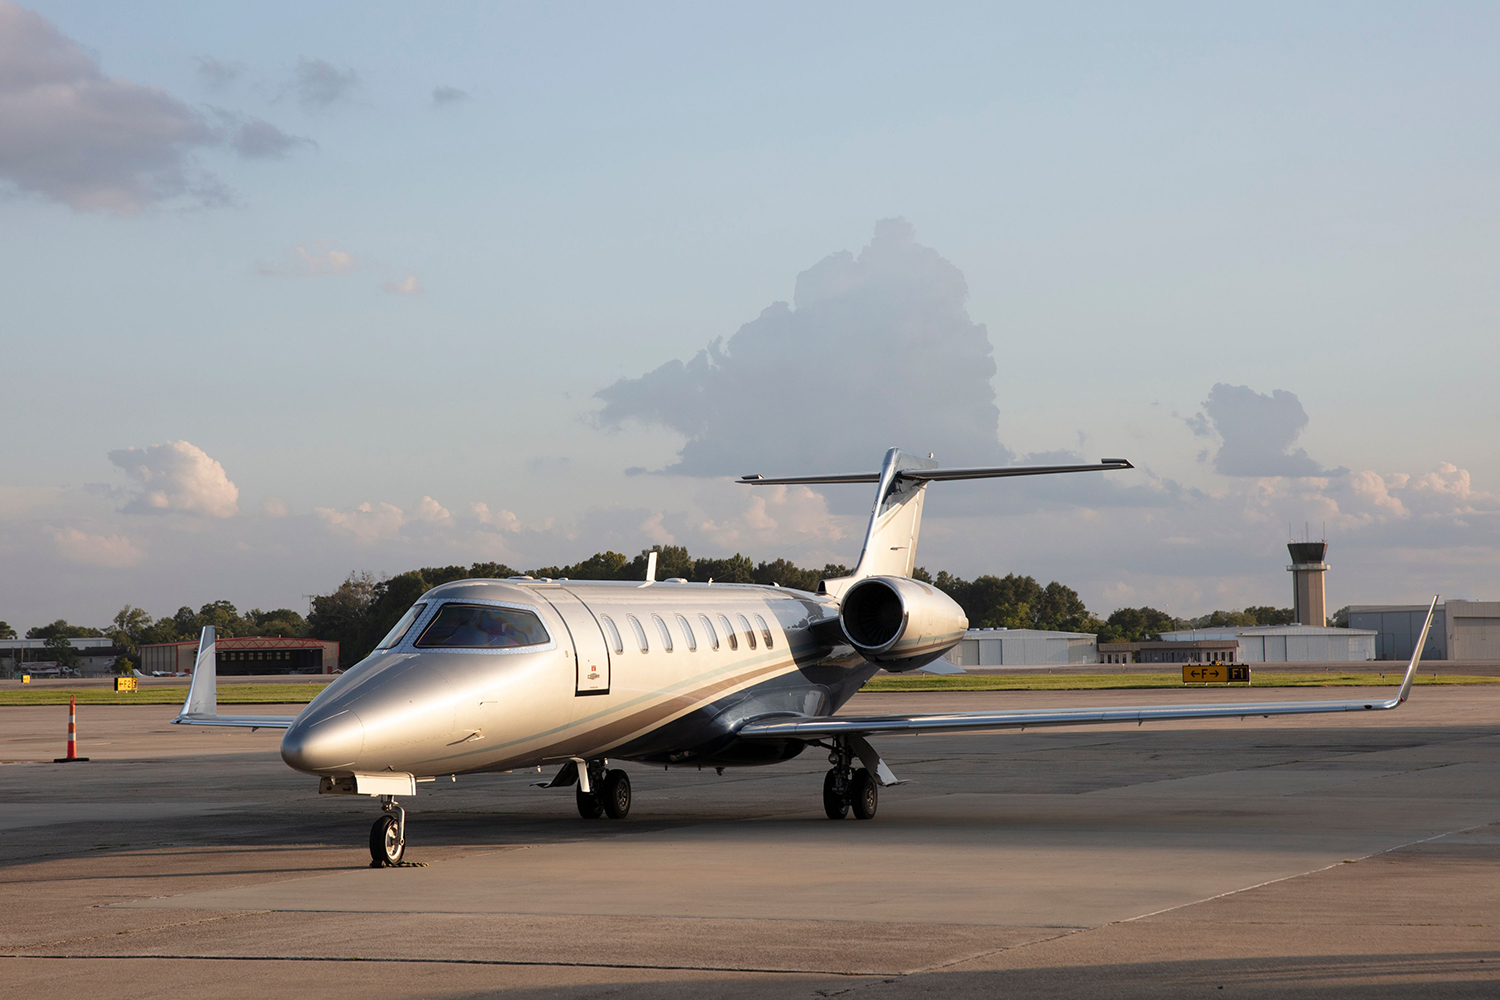 Baton Rouge Air Charter's Lear 45 Jet